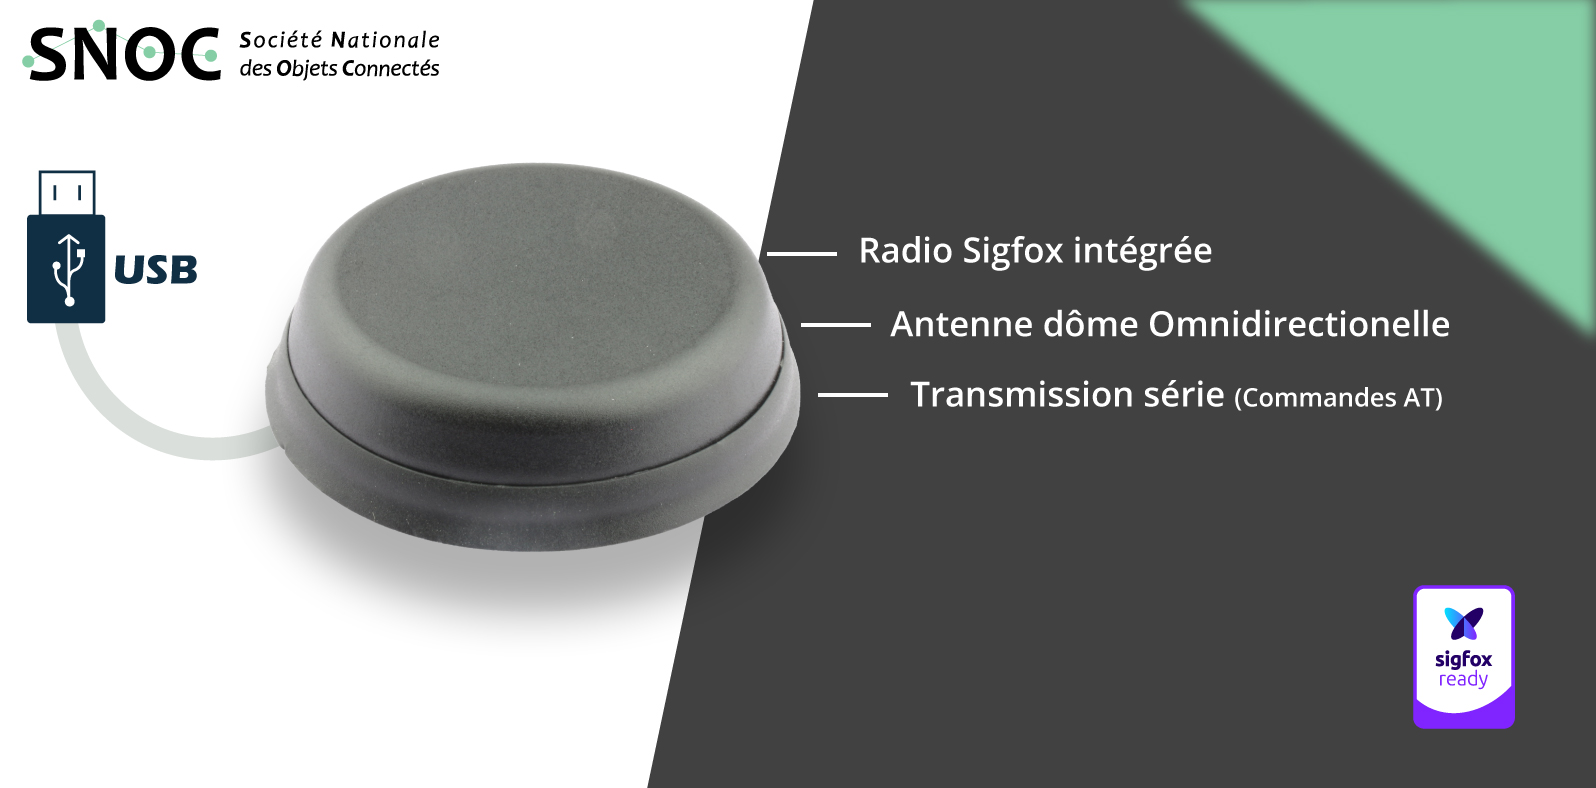 yadom present the all-in-1 active antenna Neomni Smart Connect